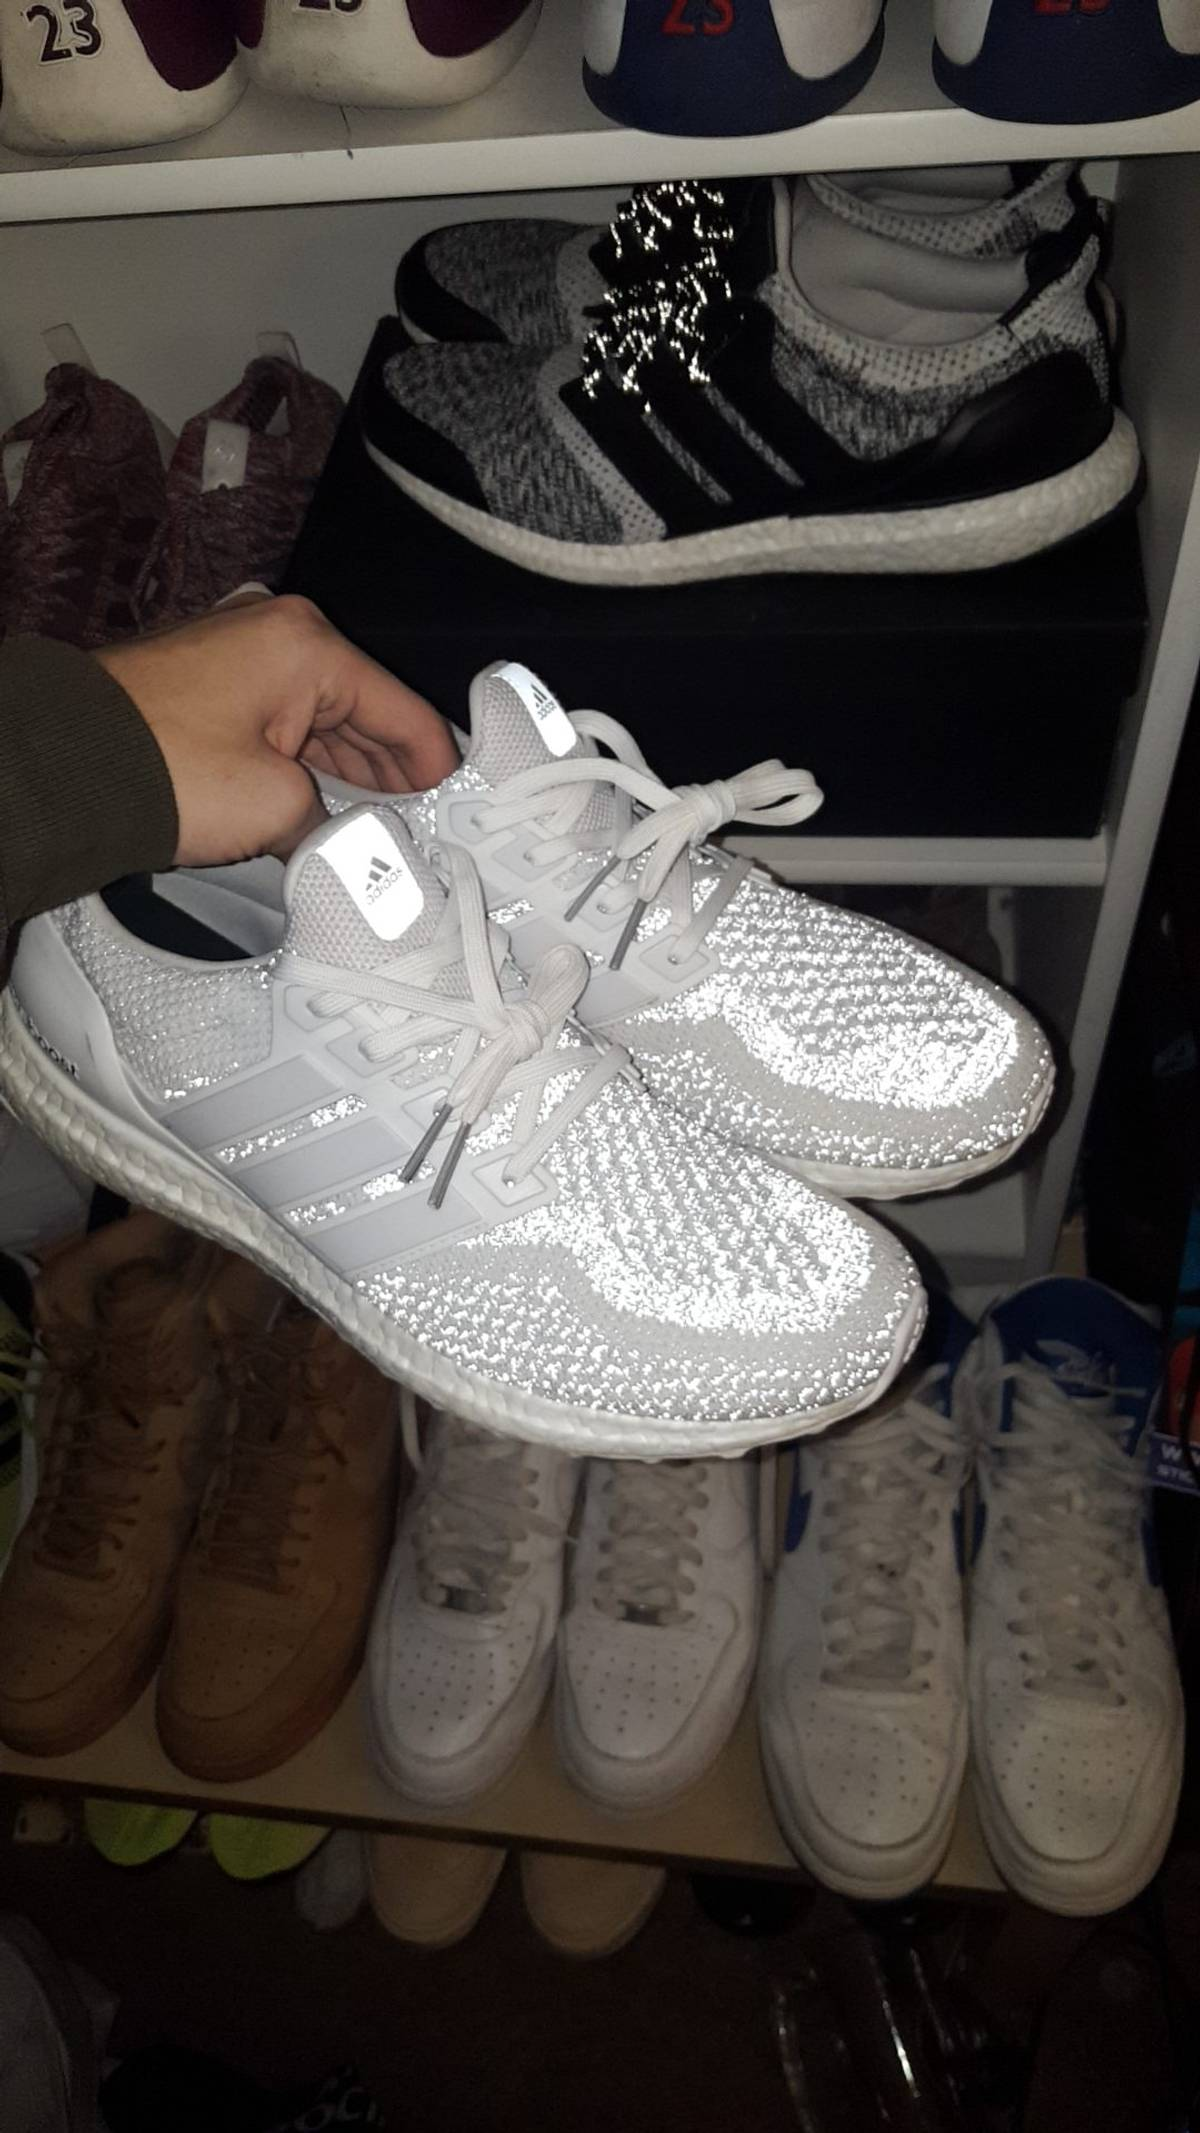 new style eed31 352a8 Adidas Adidas Ultra Boost 2.0 White Reflective Size 11.5 $202